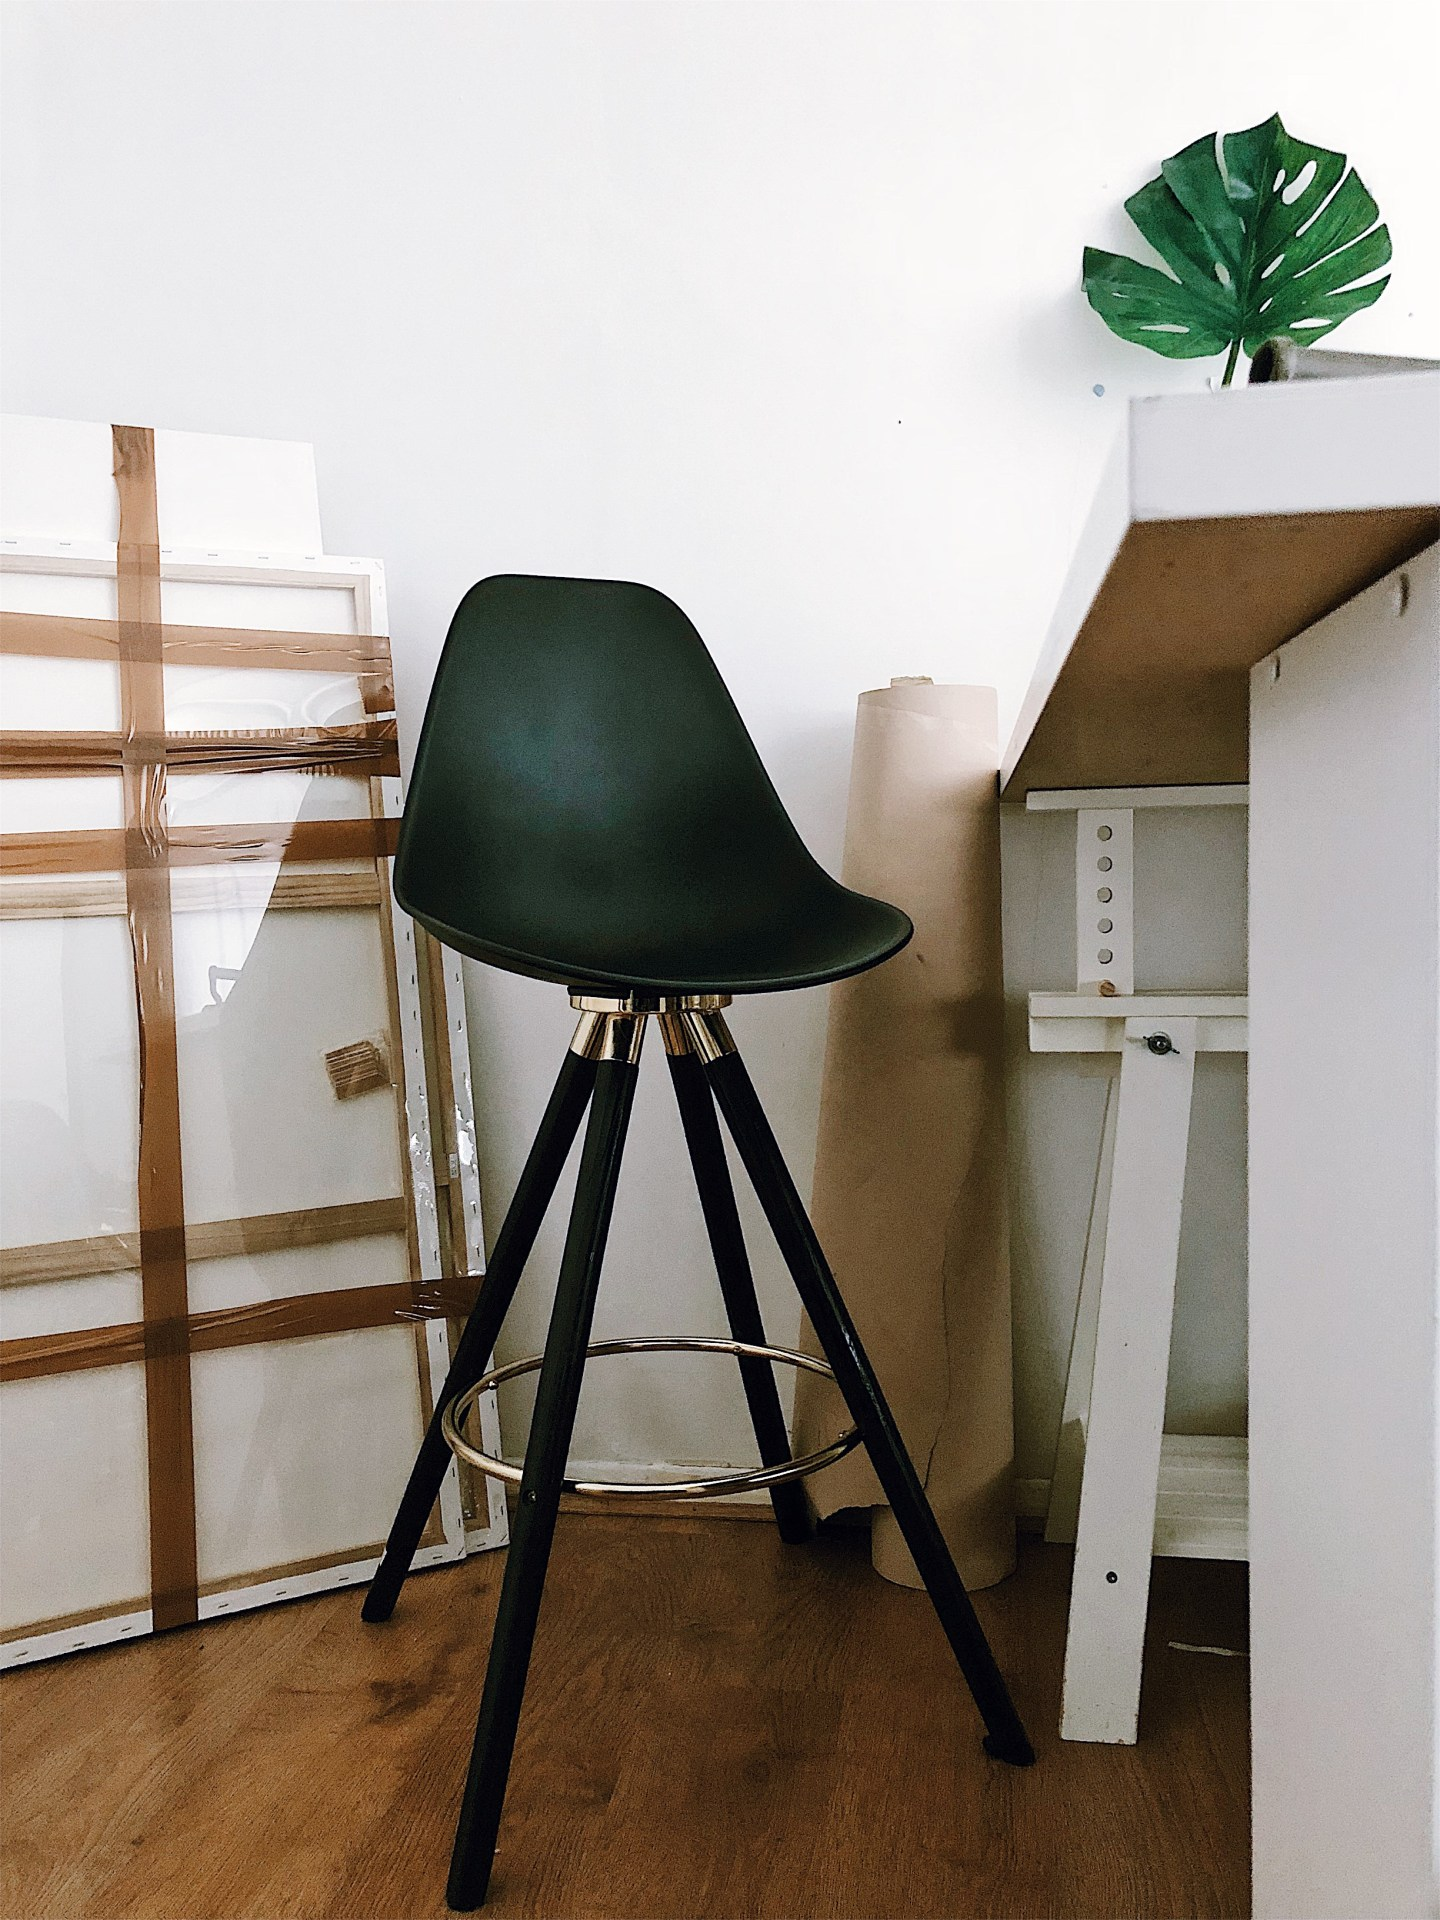 Studio Update with Cult Furniture, cult furniture blogger, fashion studio uk, london fashion studio